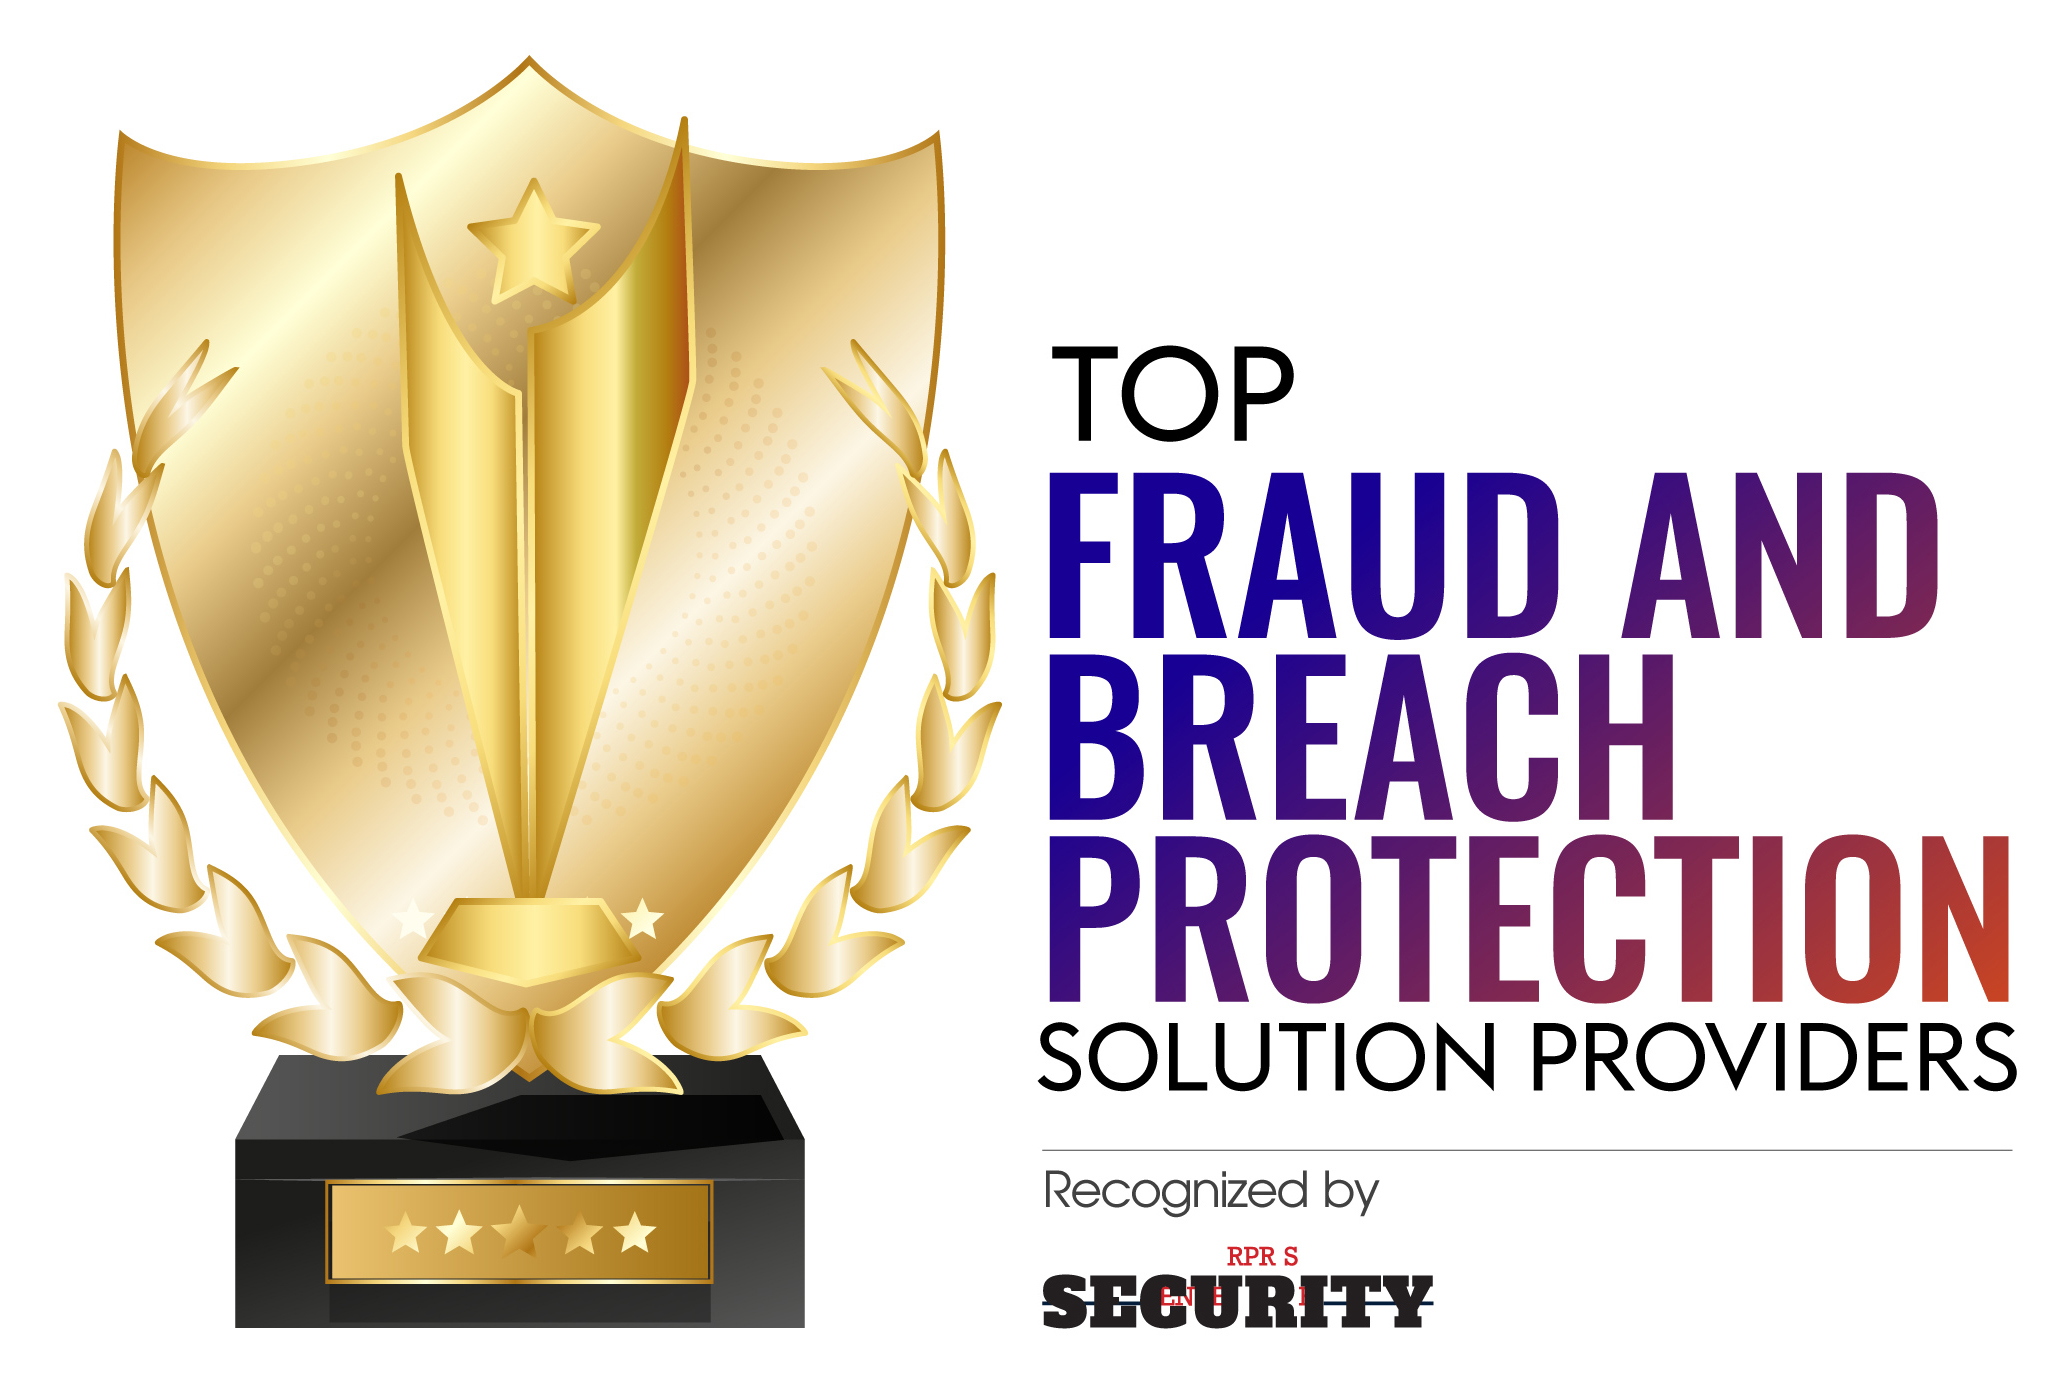 Top Fraud and Breach Protection Solution Companies